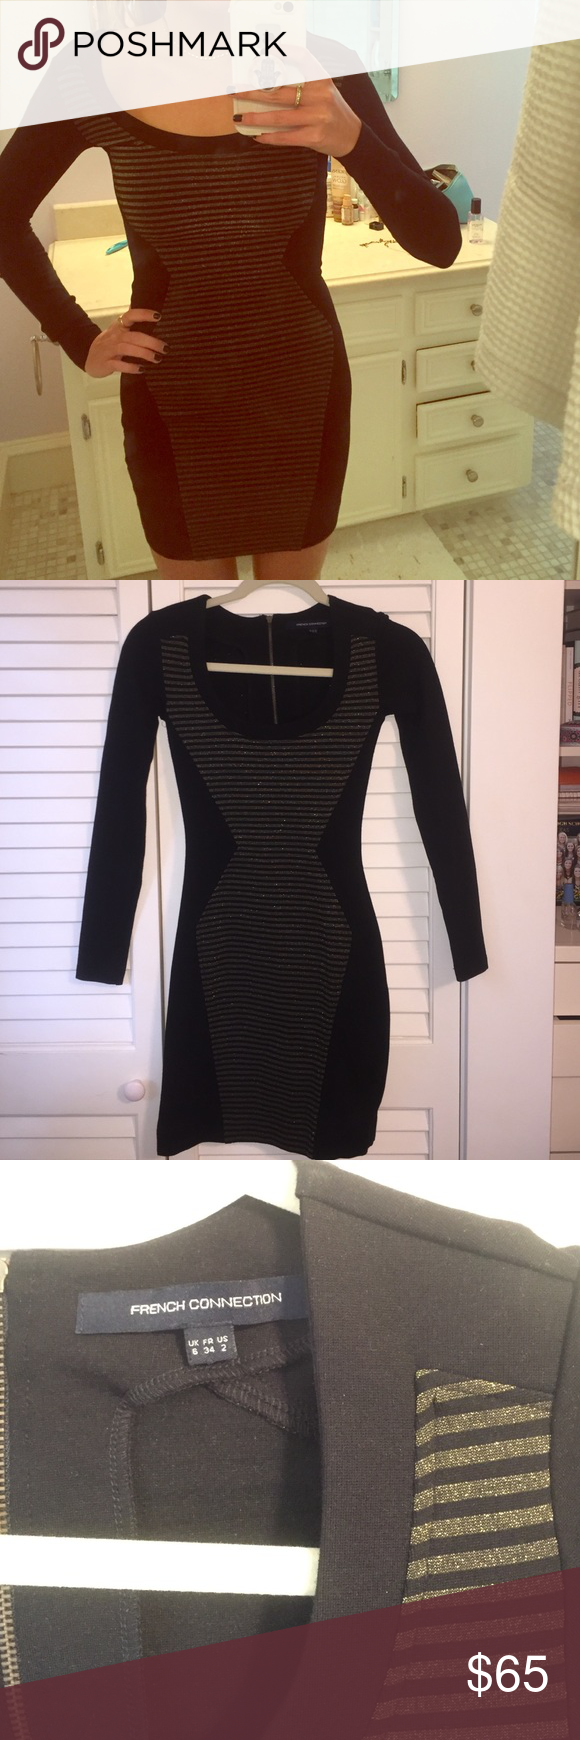 French connection black and gold dress black and gold long sleeve